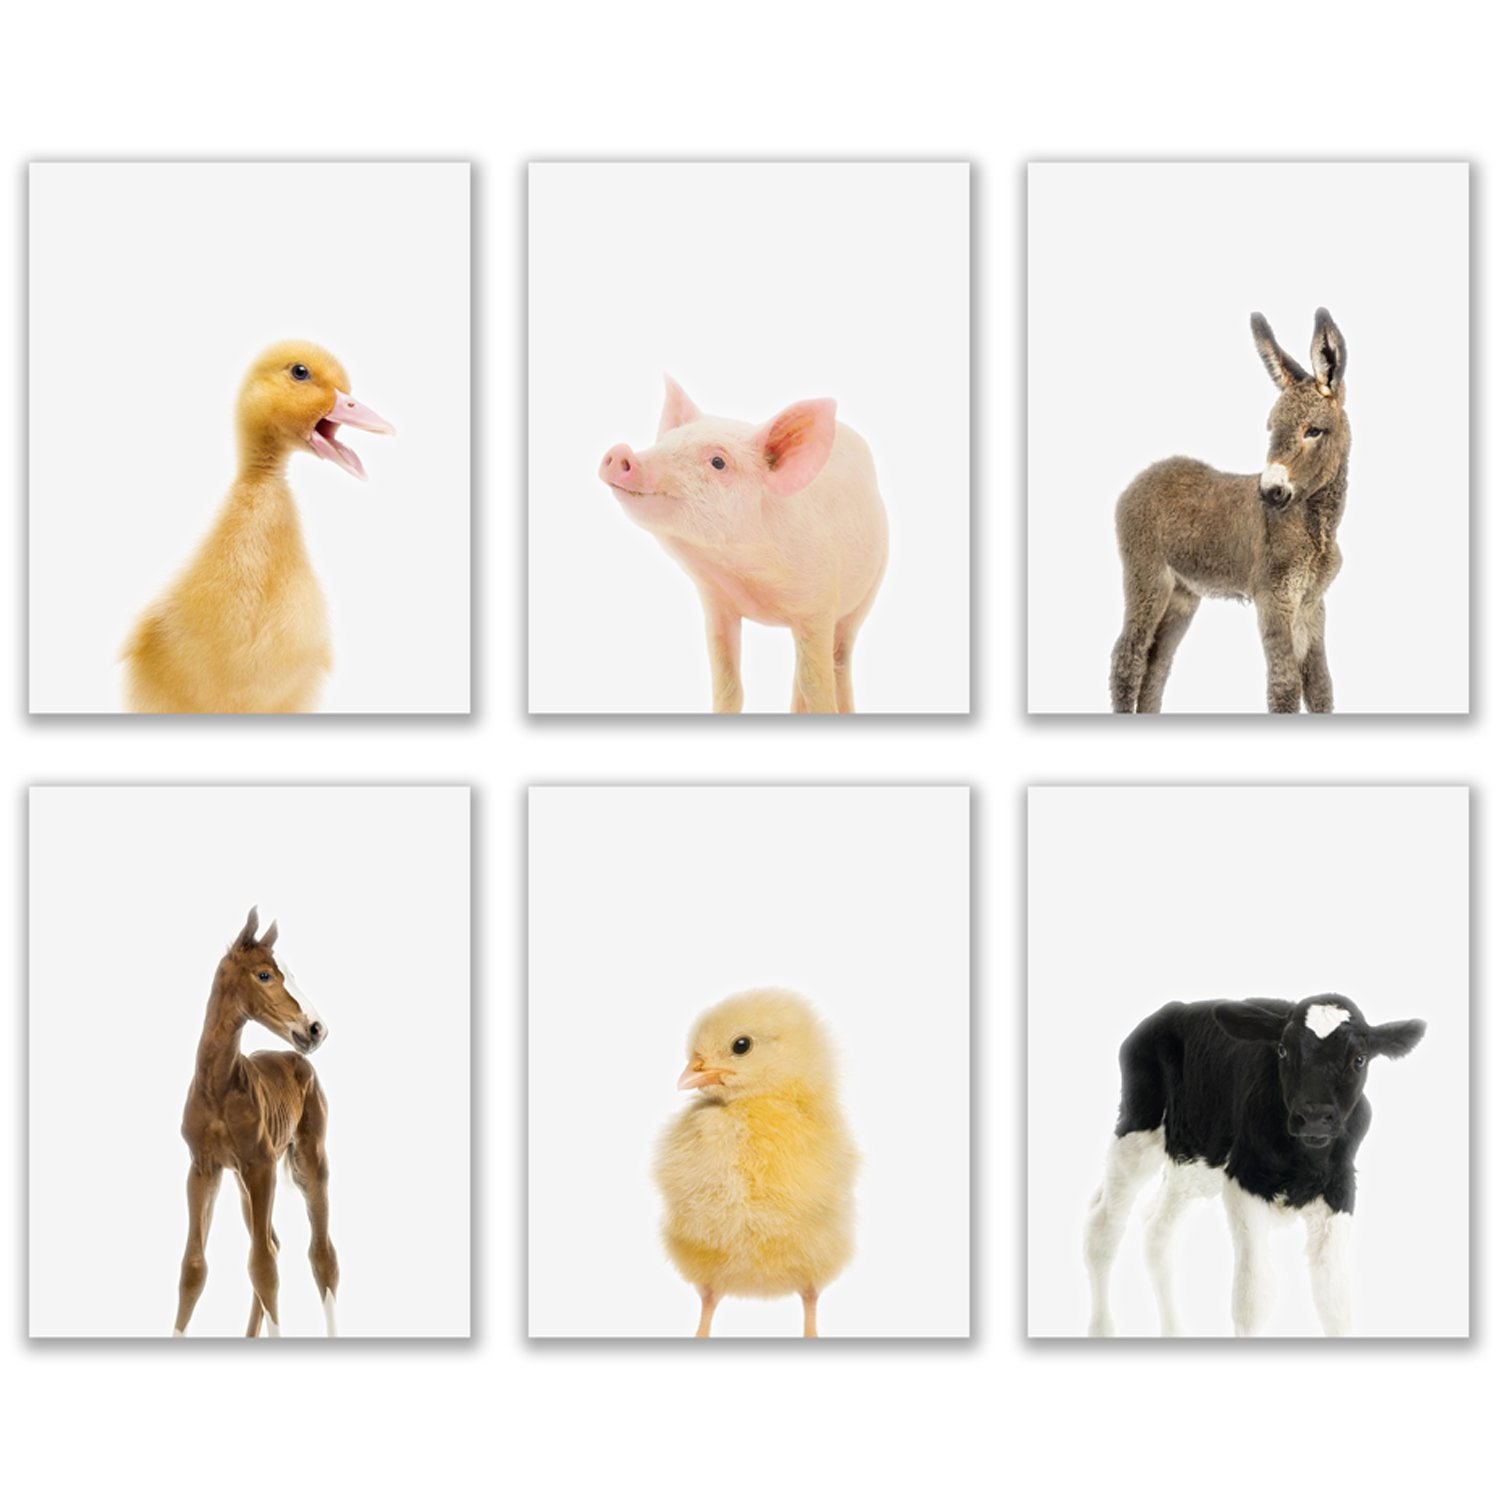 Crystal Baby Farm Animals Poster Prints - Set of 6 (8x10) Adorable Furry Barn Portraits Wall Art Nursery Decor - Calf (Cow) - Chick (Chicken) - Donkey - Foal (Horse) - Duckling (Duck) - Piglet (Pig)